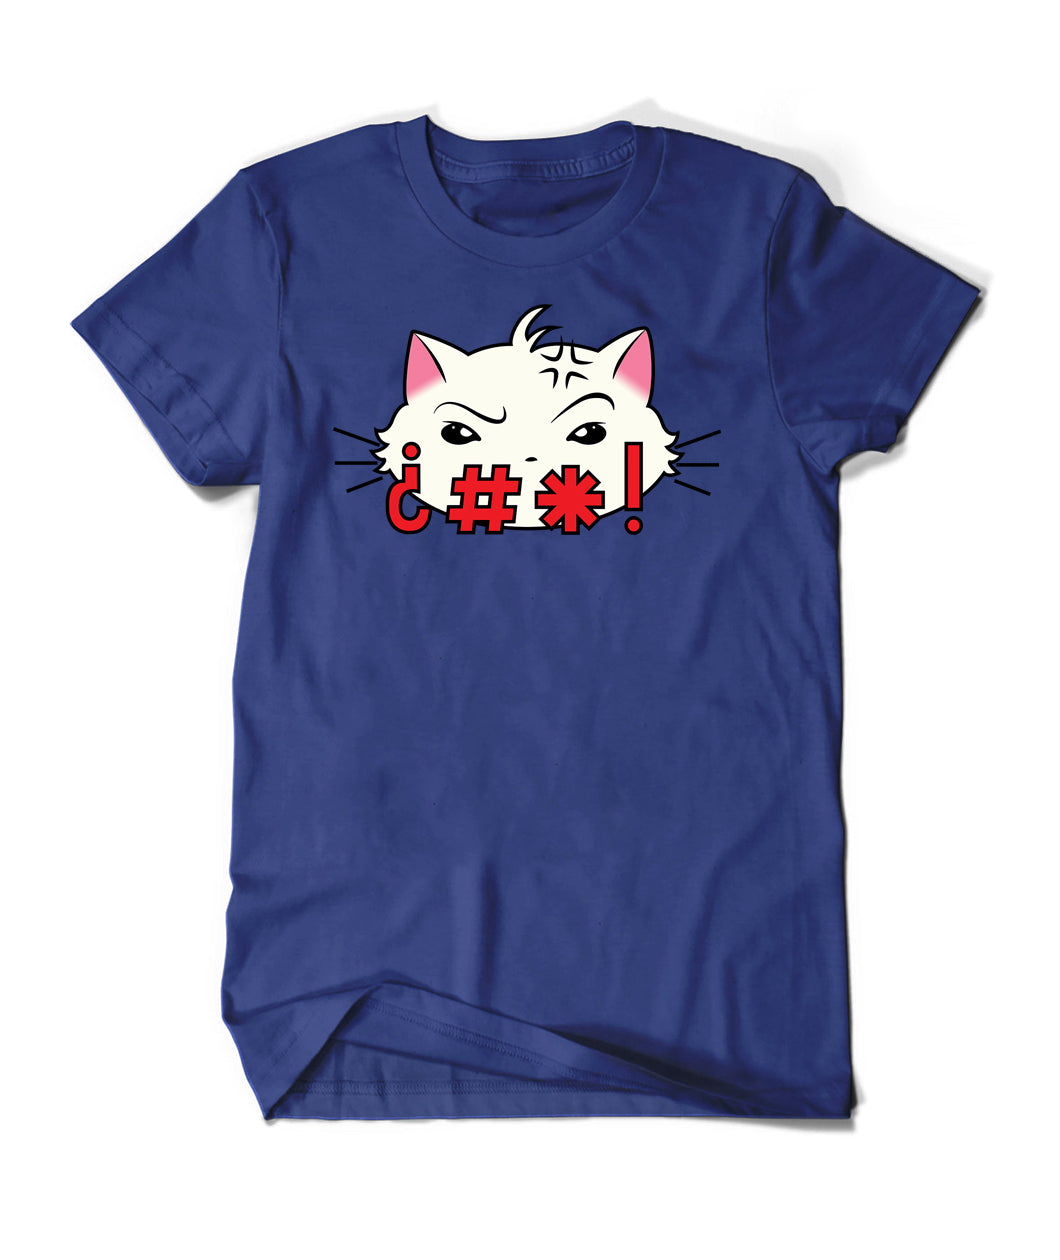 Swear Cat Shirt